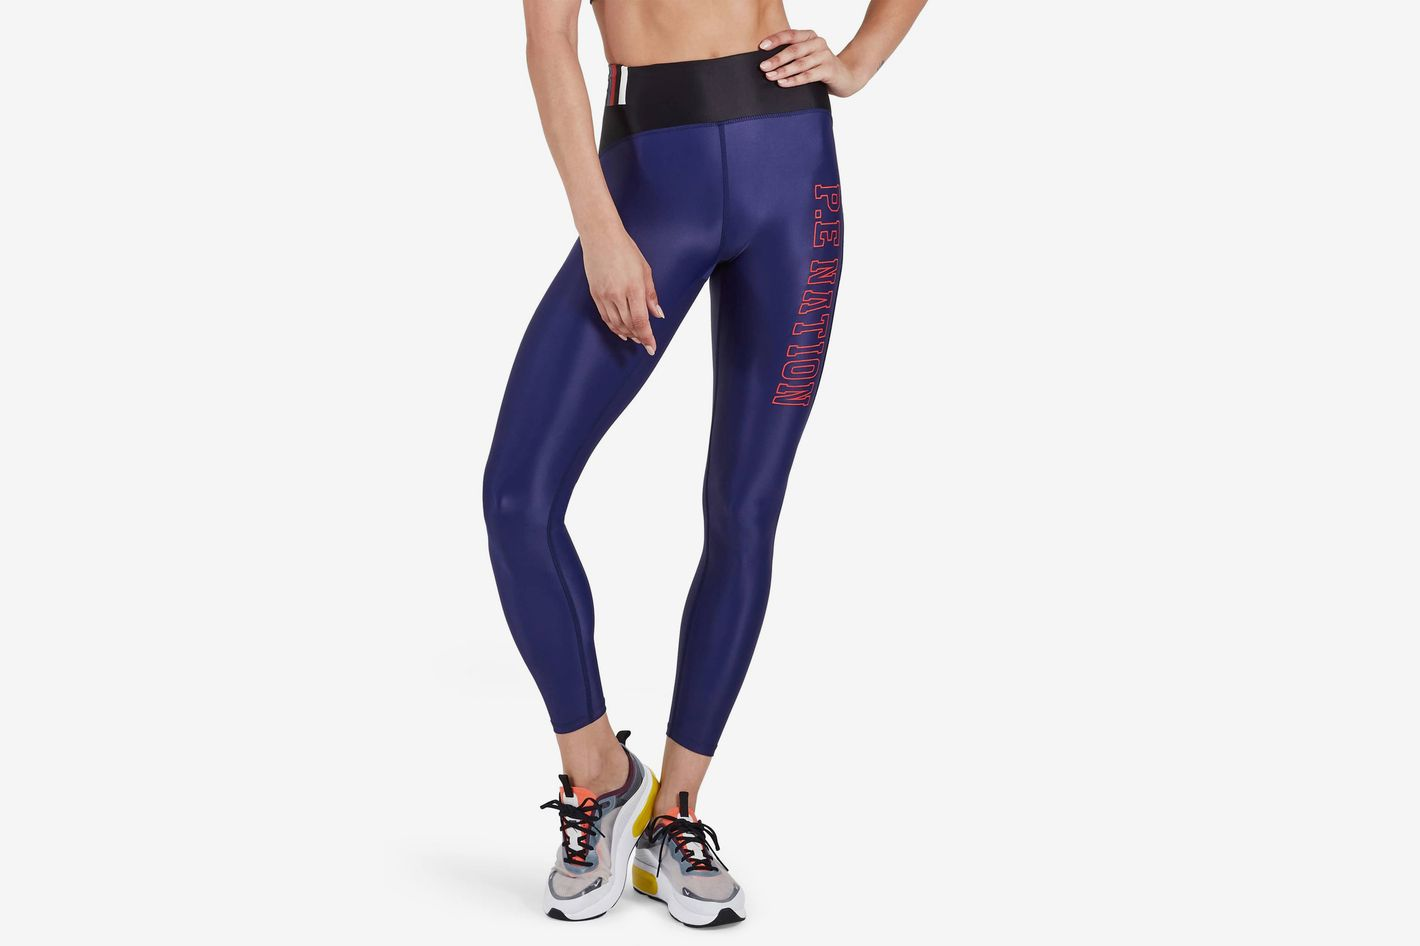 5a6055c71 The 13 Best Workout Leggings for Running and Yoga 2019